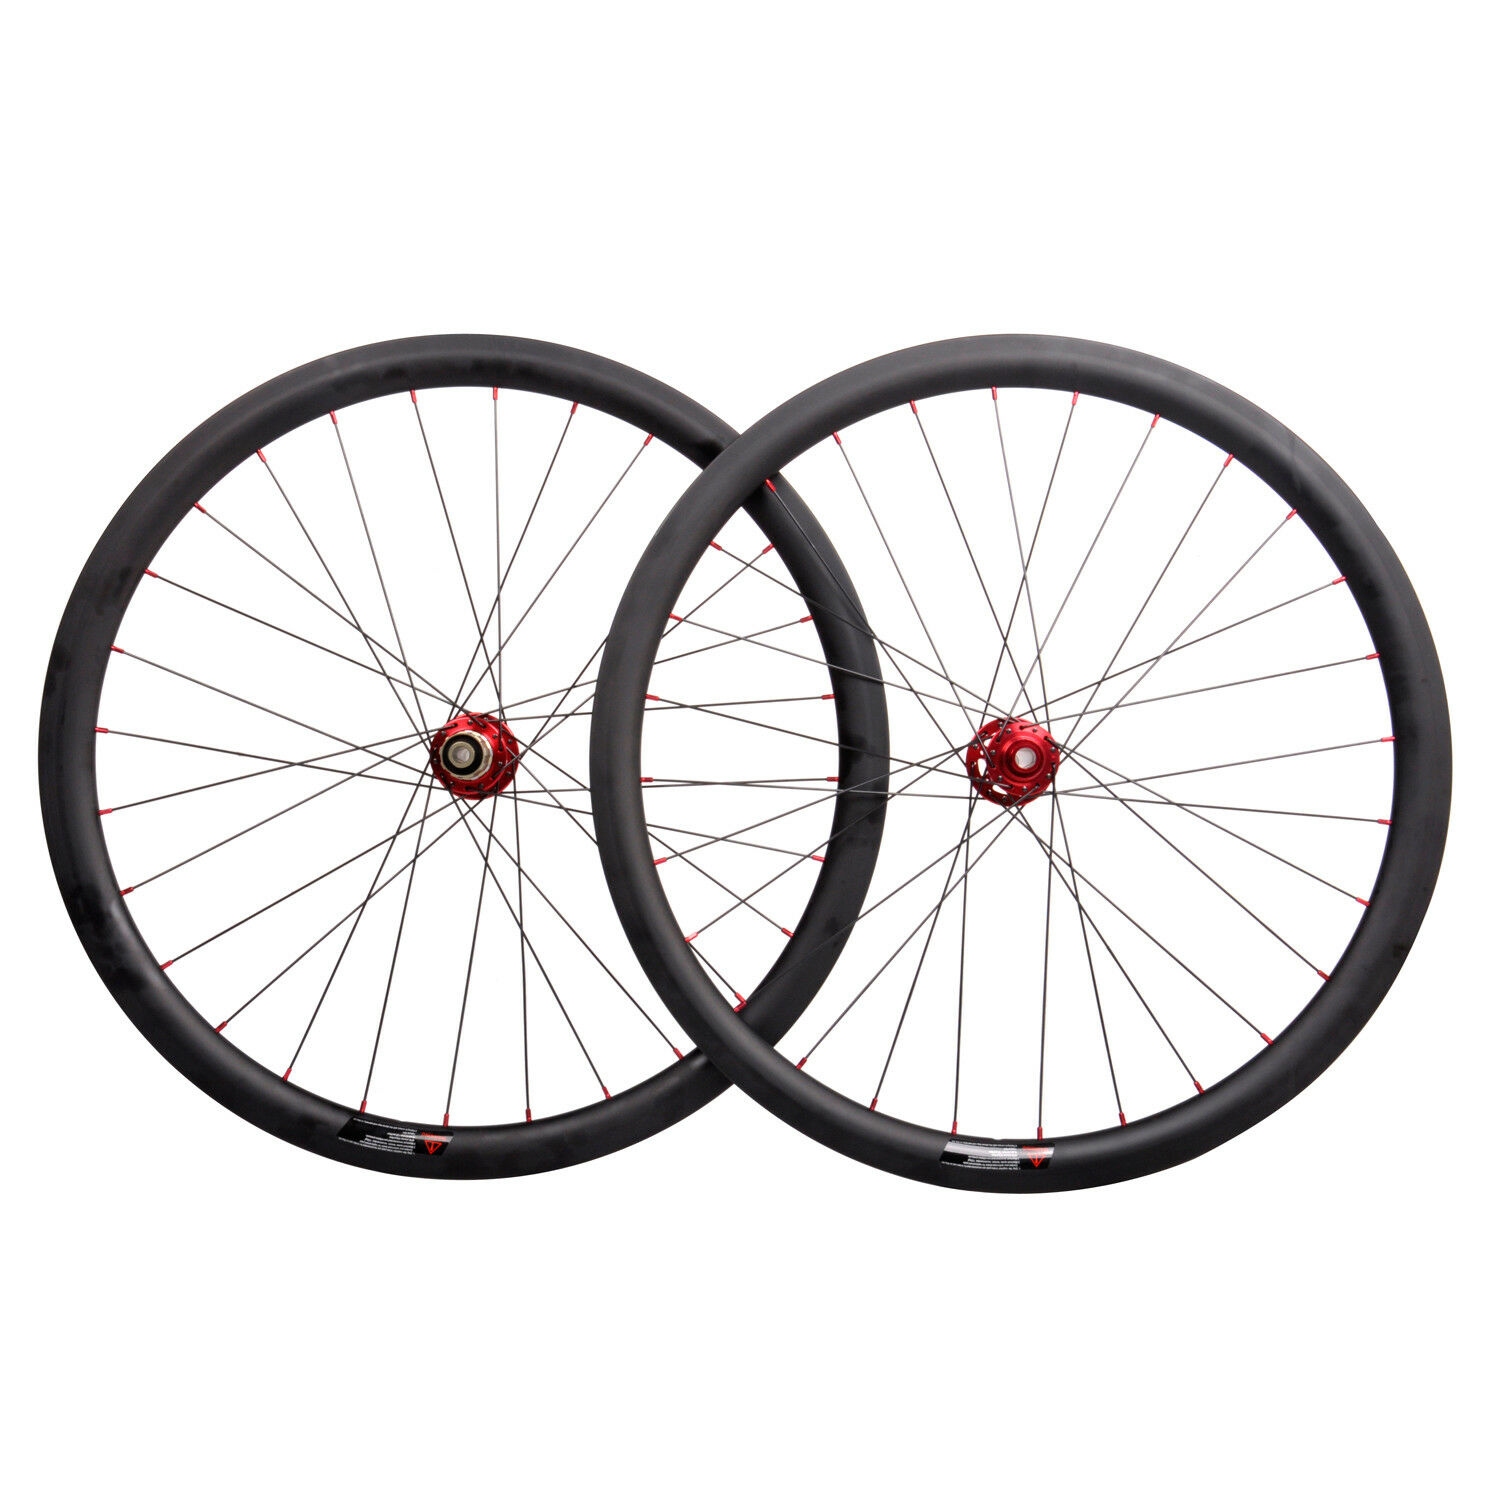 38mm Carbon Wheel Disc Brake Clincher Road Bike 700C Novatec UD Matt Rim DT 11s